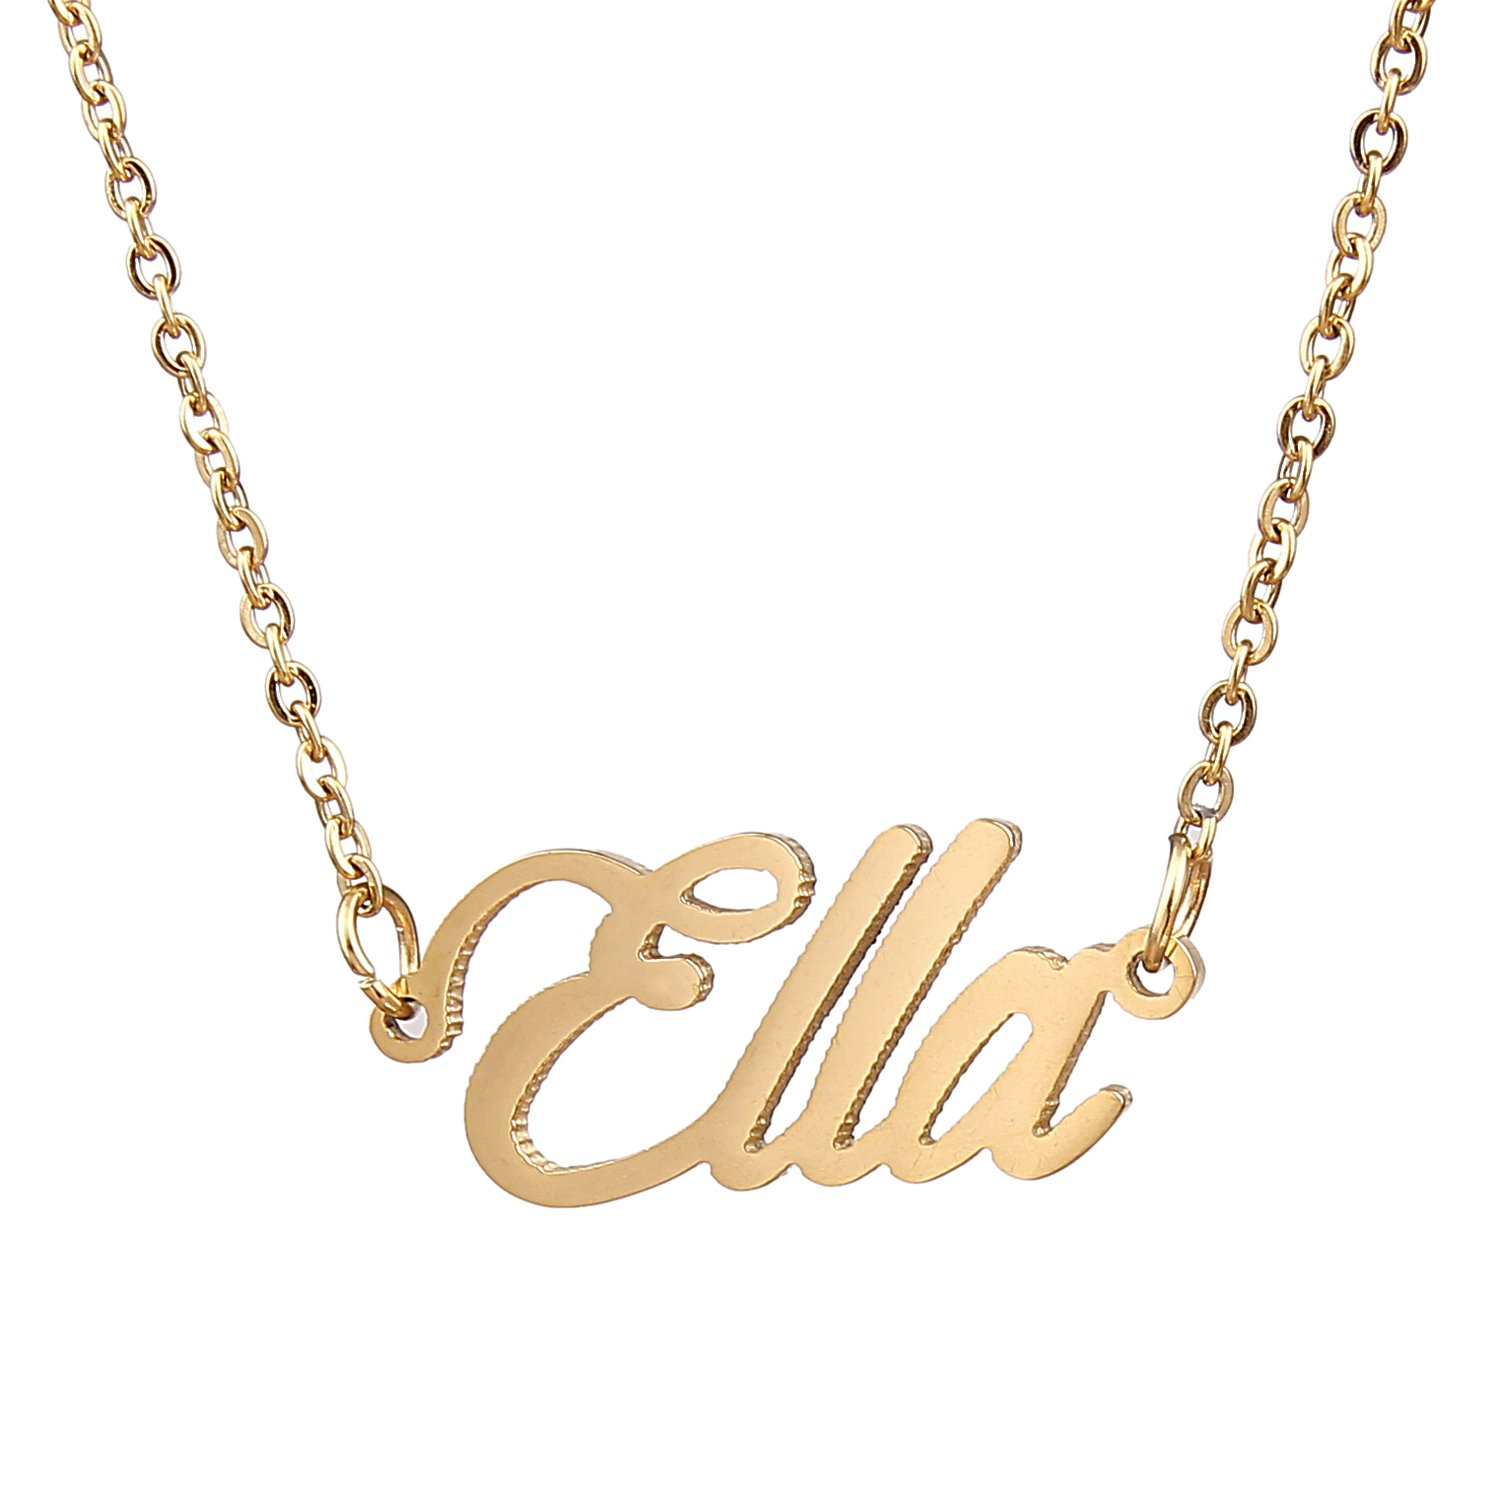 silver itm necklace inch name chain har identity emma sterling on real jewellery